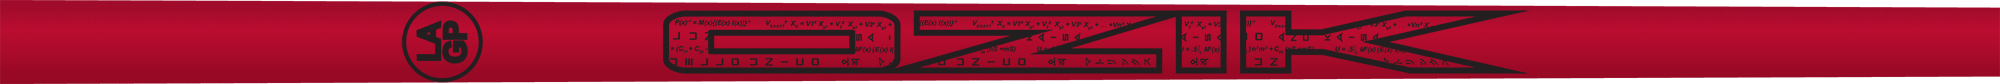 Ozik White Tie: Red Black Matte - Wood 60 S